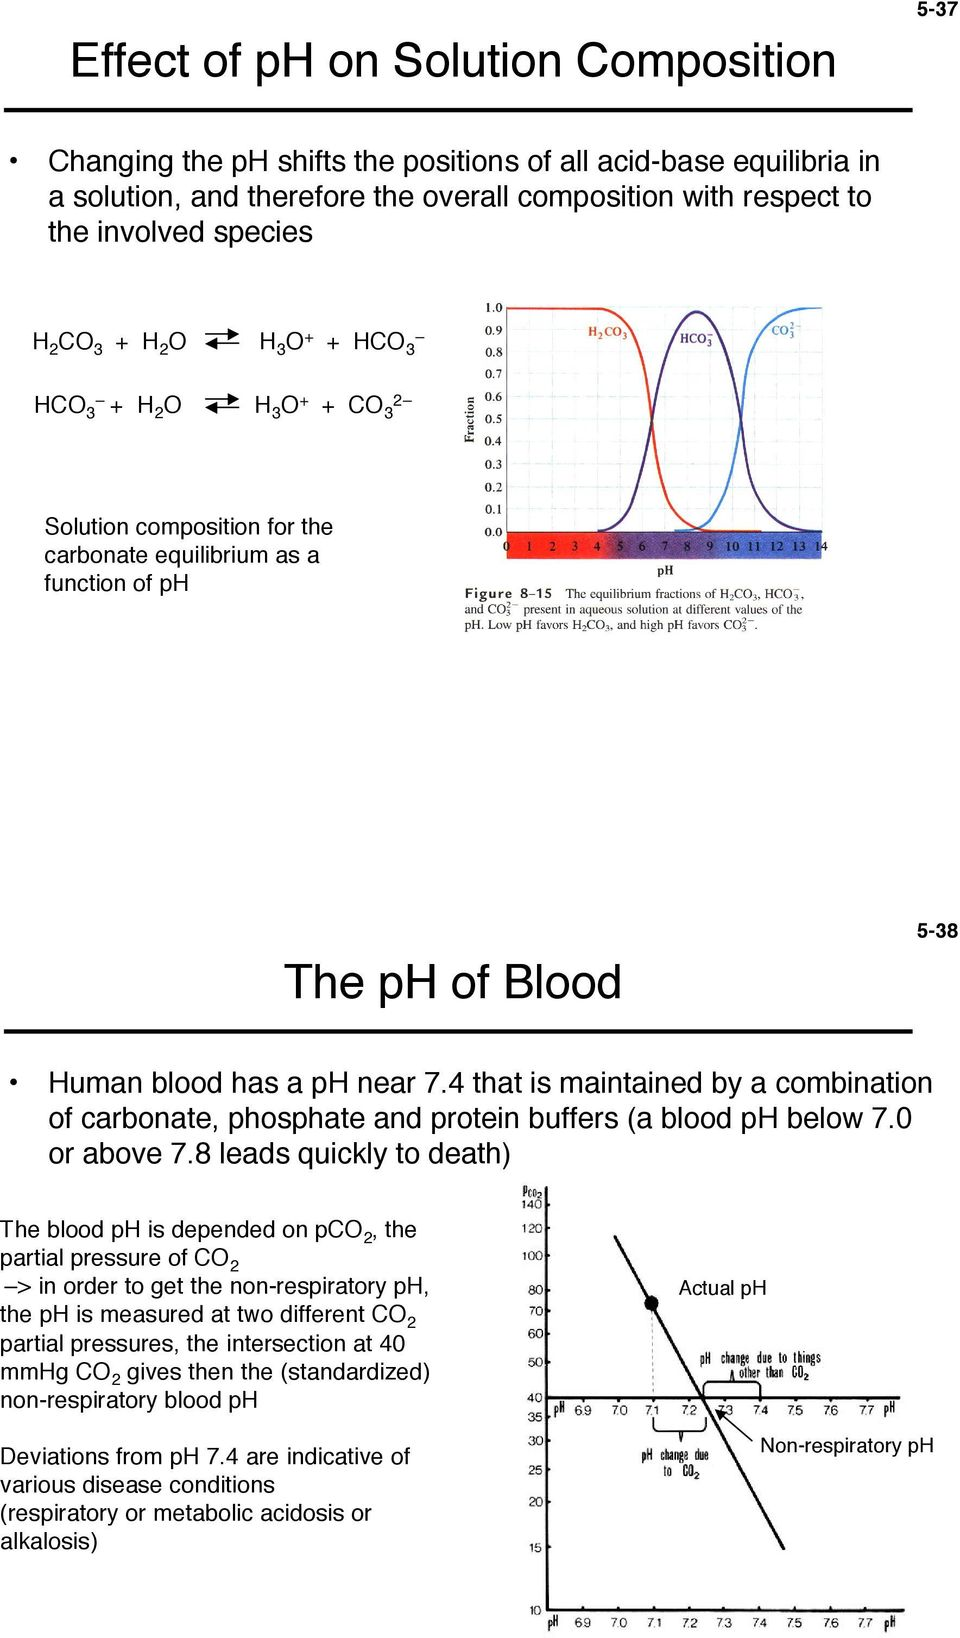 4 that is maintained by a combination of carbonate, phosphate and protein buffers (a blood ph below 7.0 or above 7.